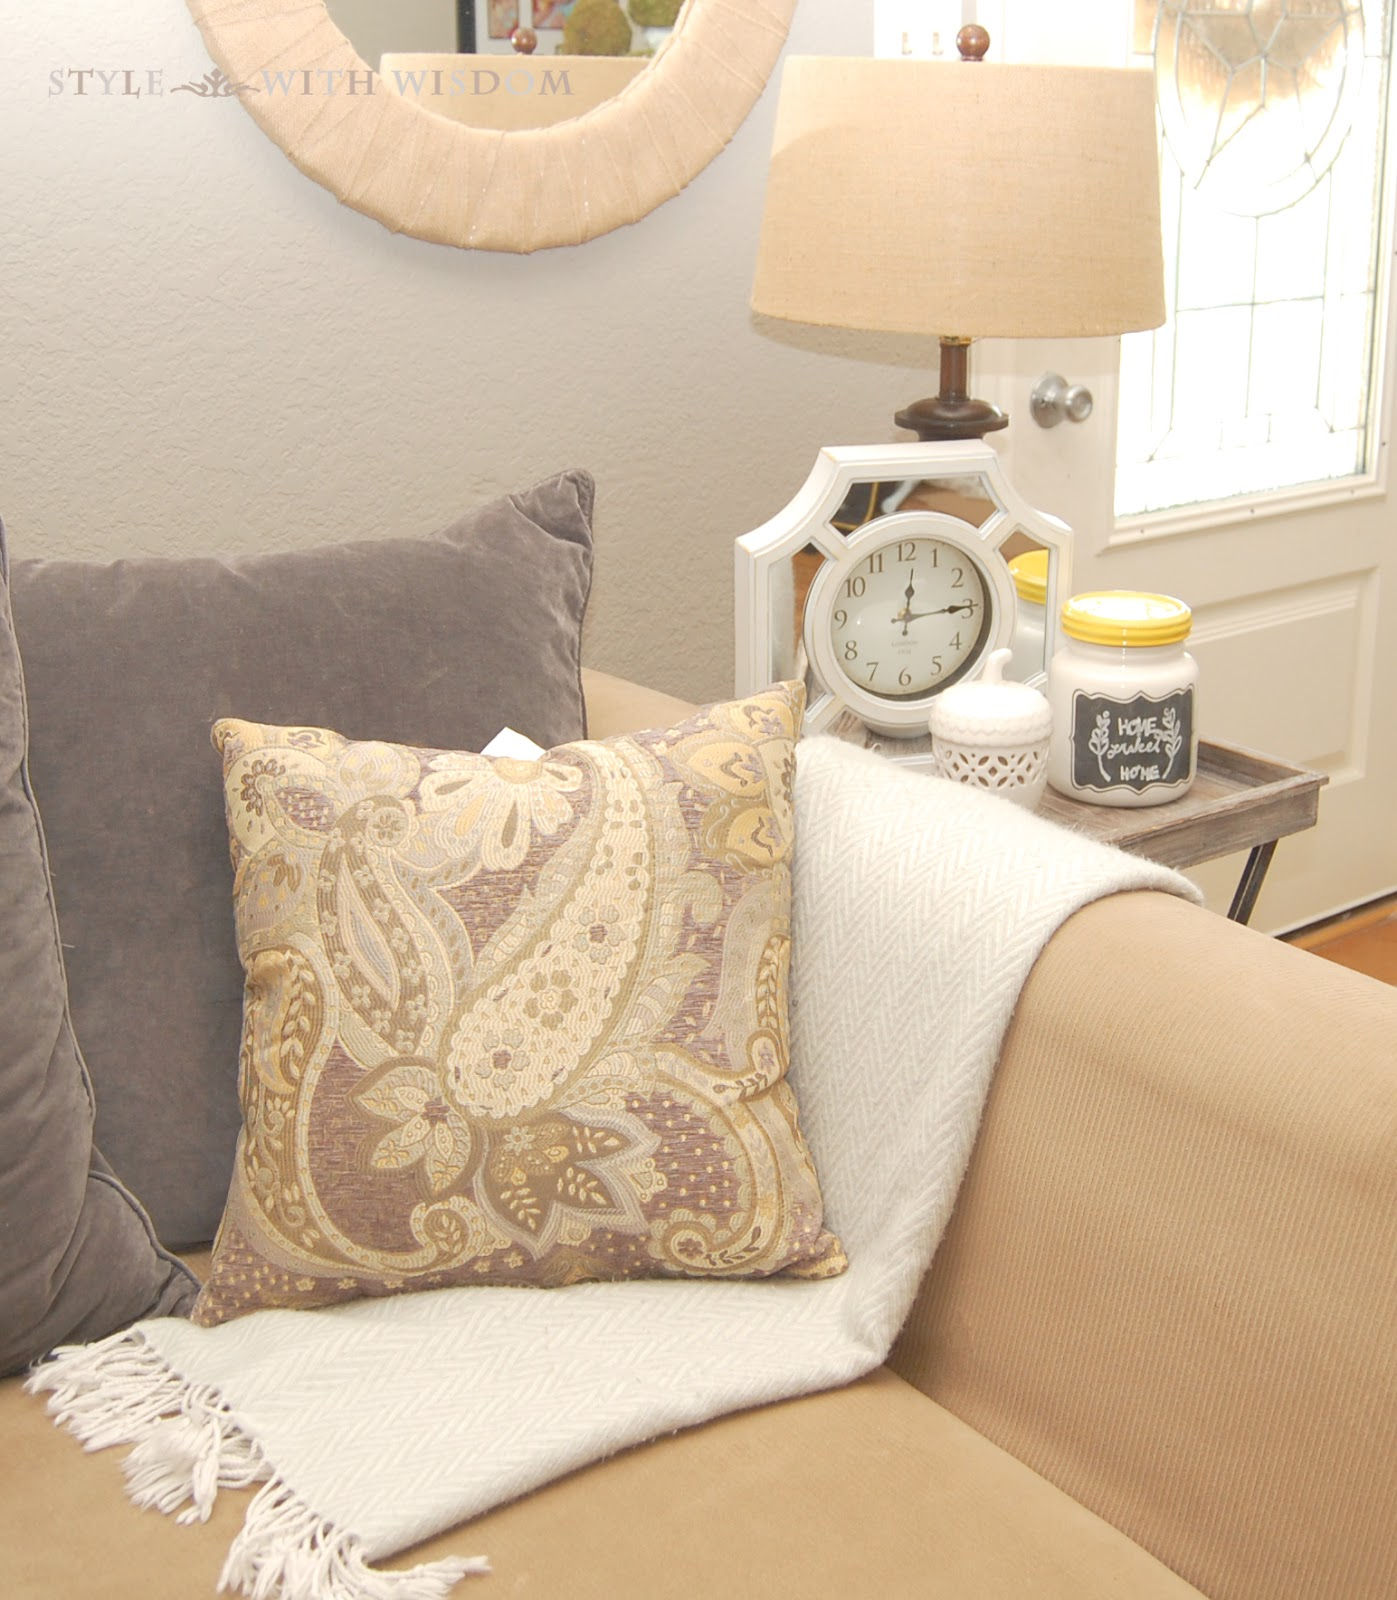 Style with Wisdom: Living Room Update with Big Lots!